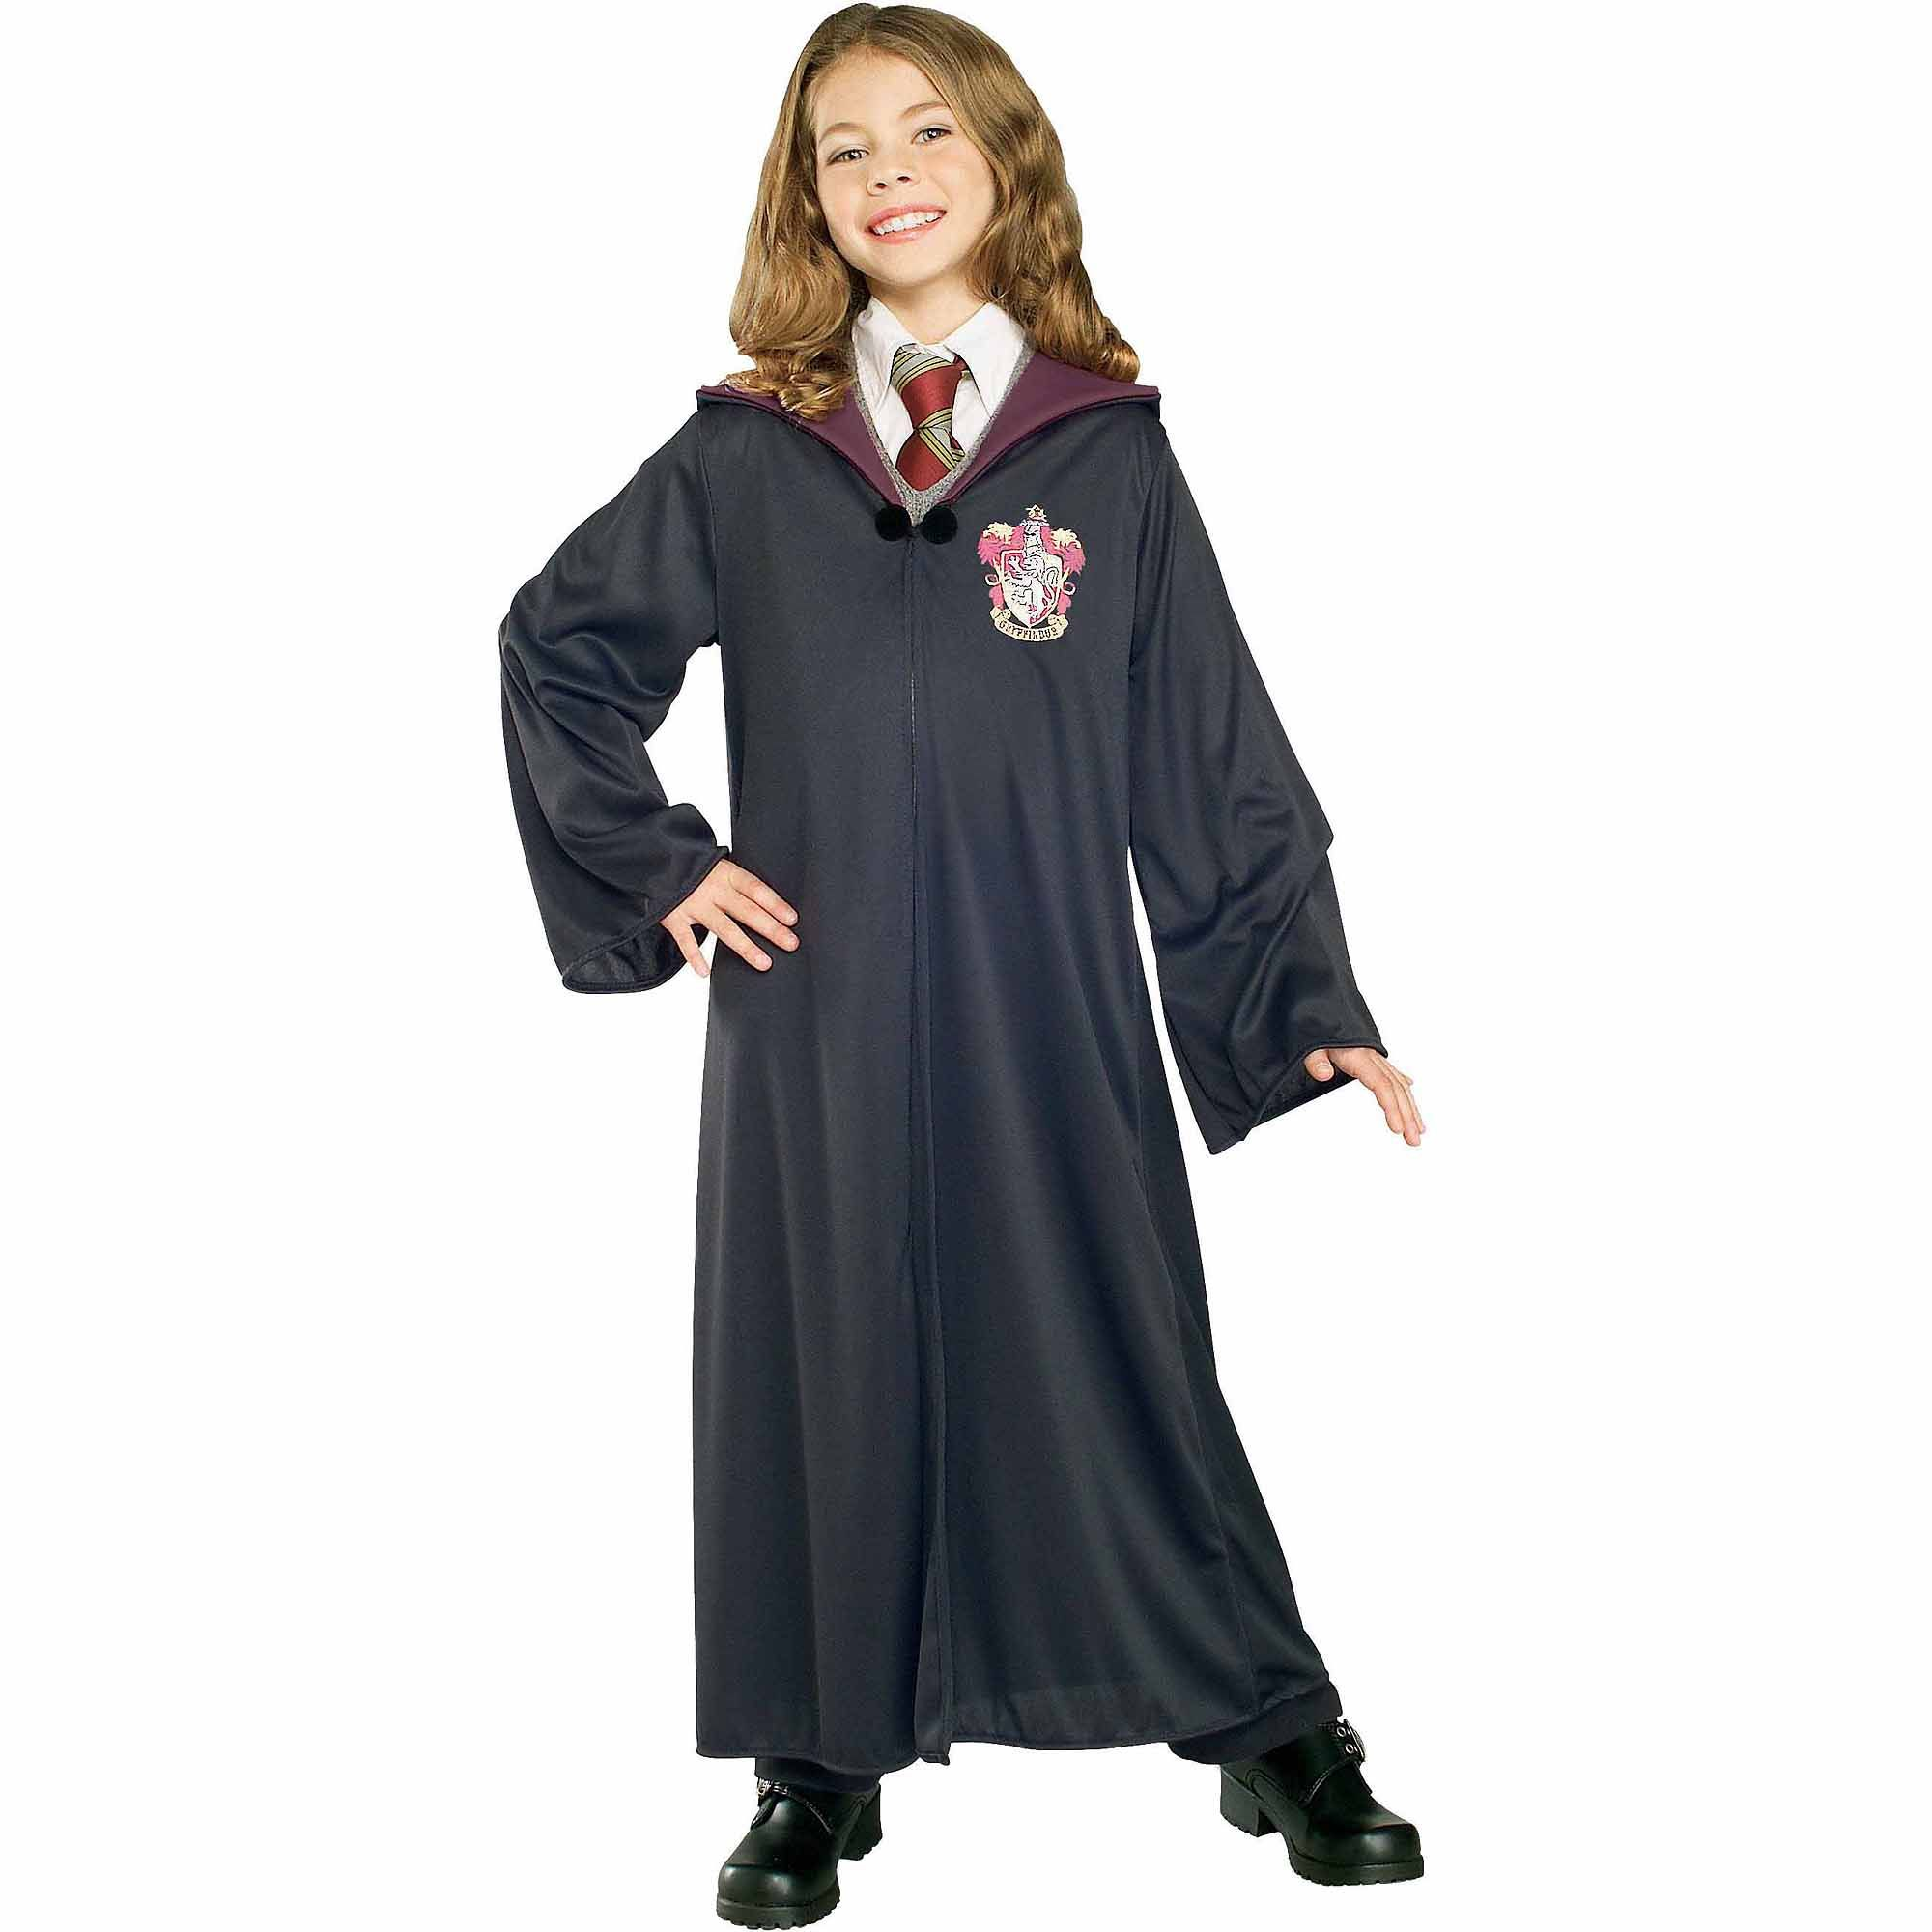 Hermione Granger Costume Party City